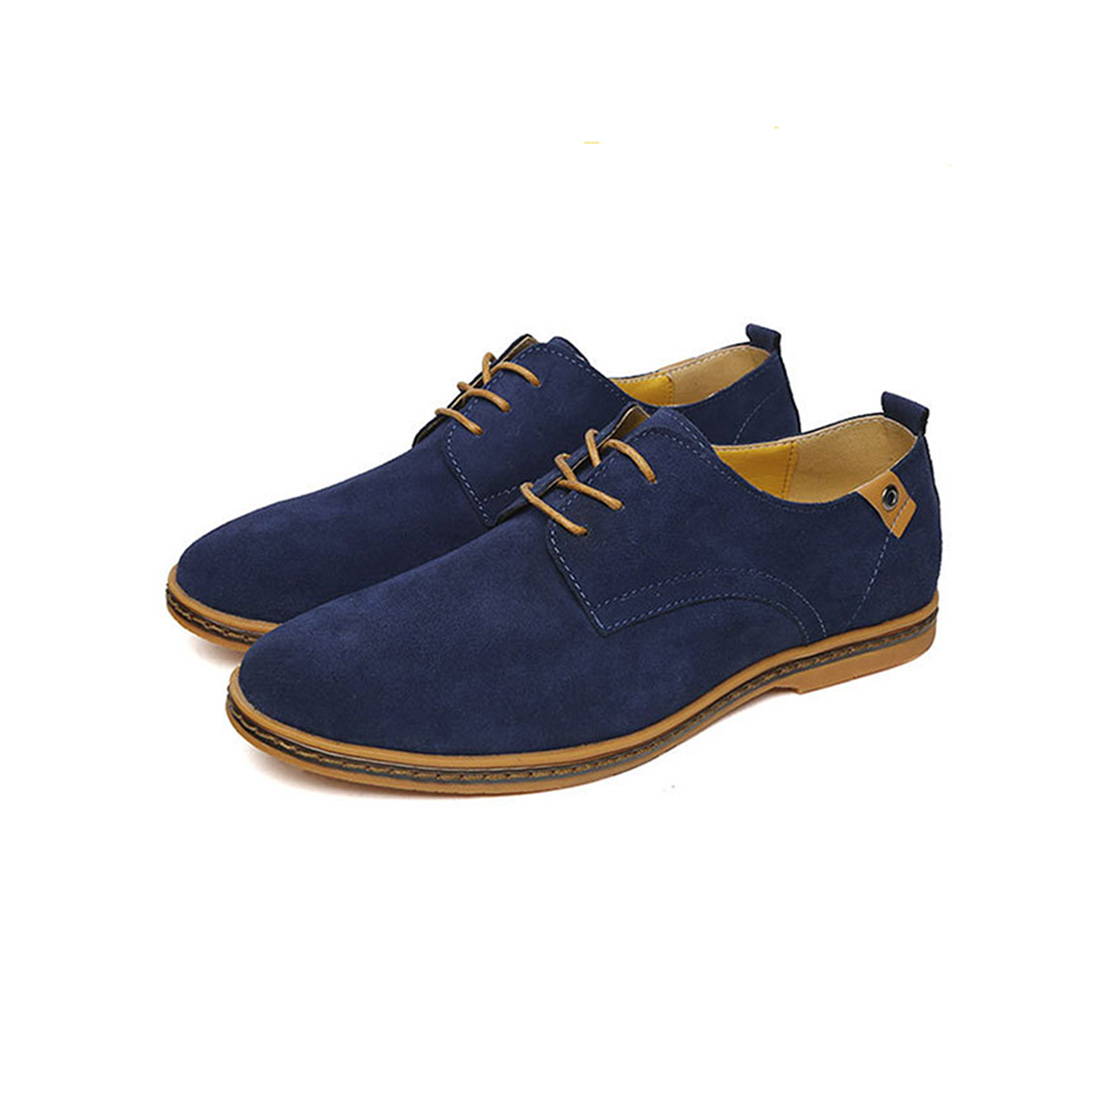 Hot Sale 2017 Men Shoes fashion Winter Warm Synthetic Leather Shoes Flat Lace up Ankle Boots for Man Rubber Outsole Casual Shoes<br><br>Aliexpress